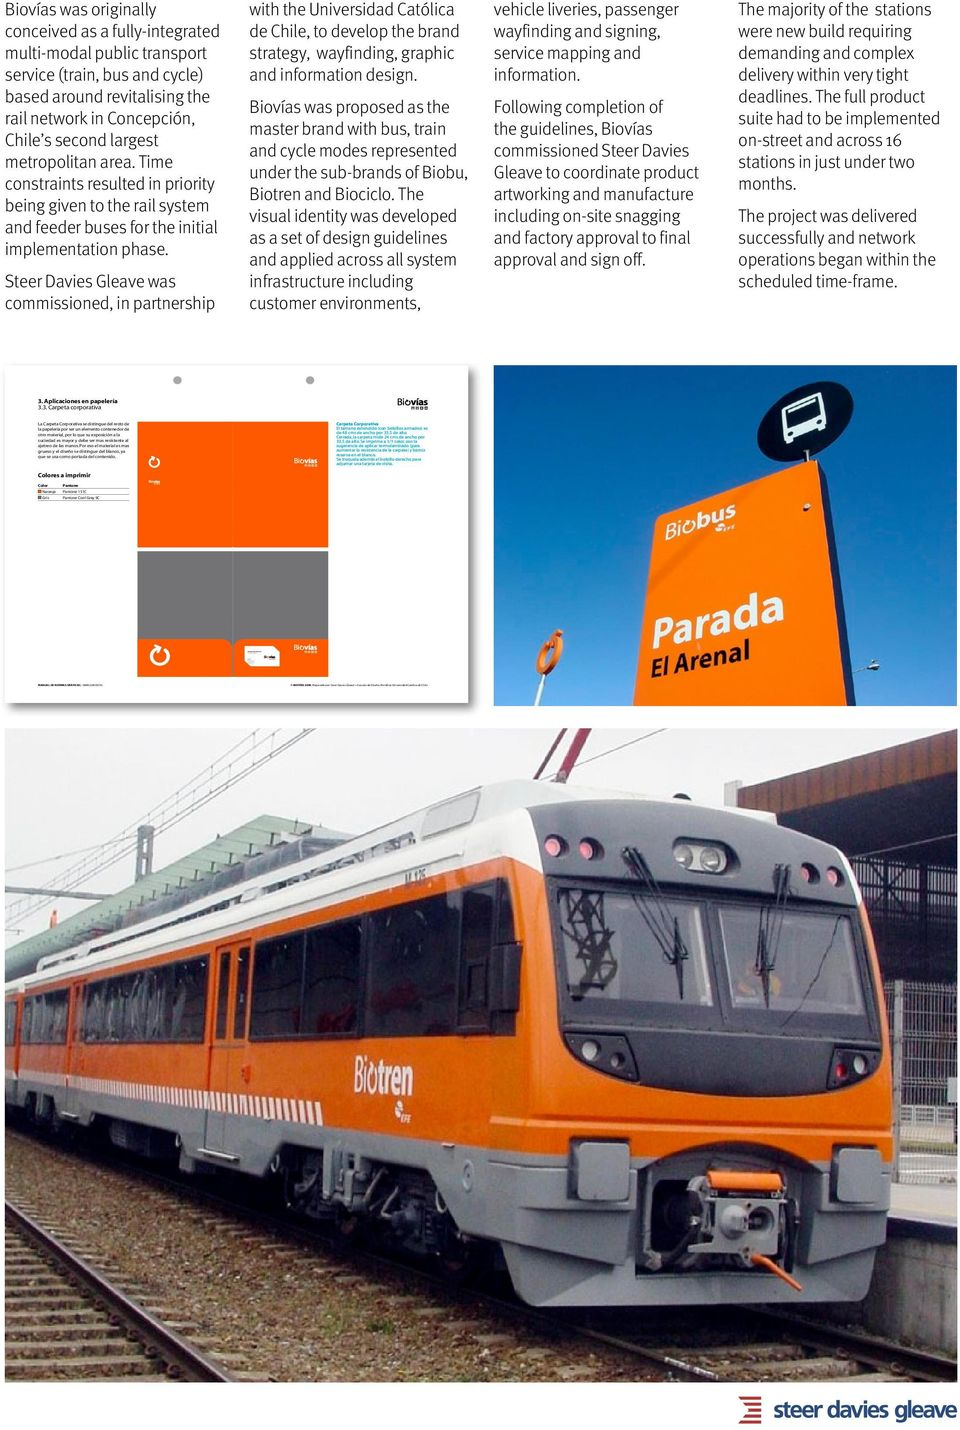 and cycle) based around revitalising the rail network in Concepción, Chile s second largest metropolitan area.